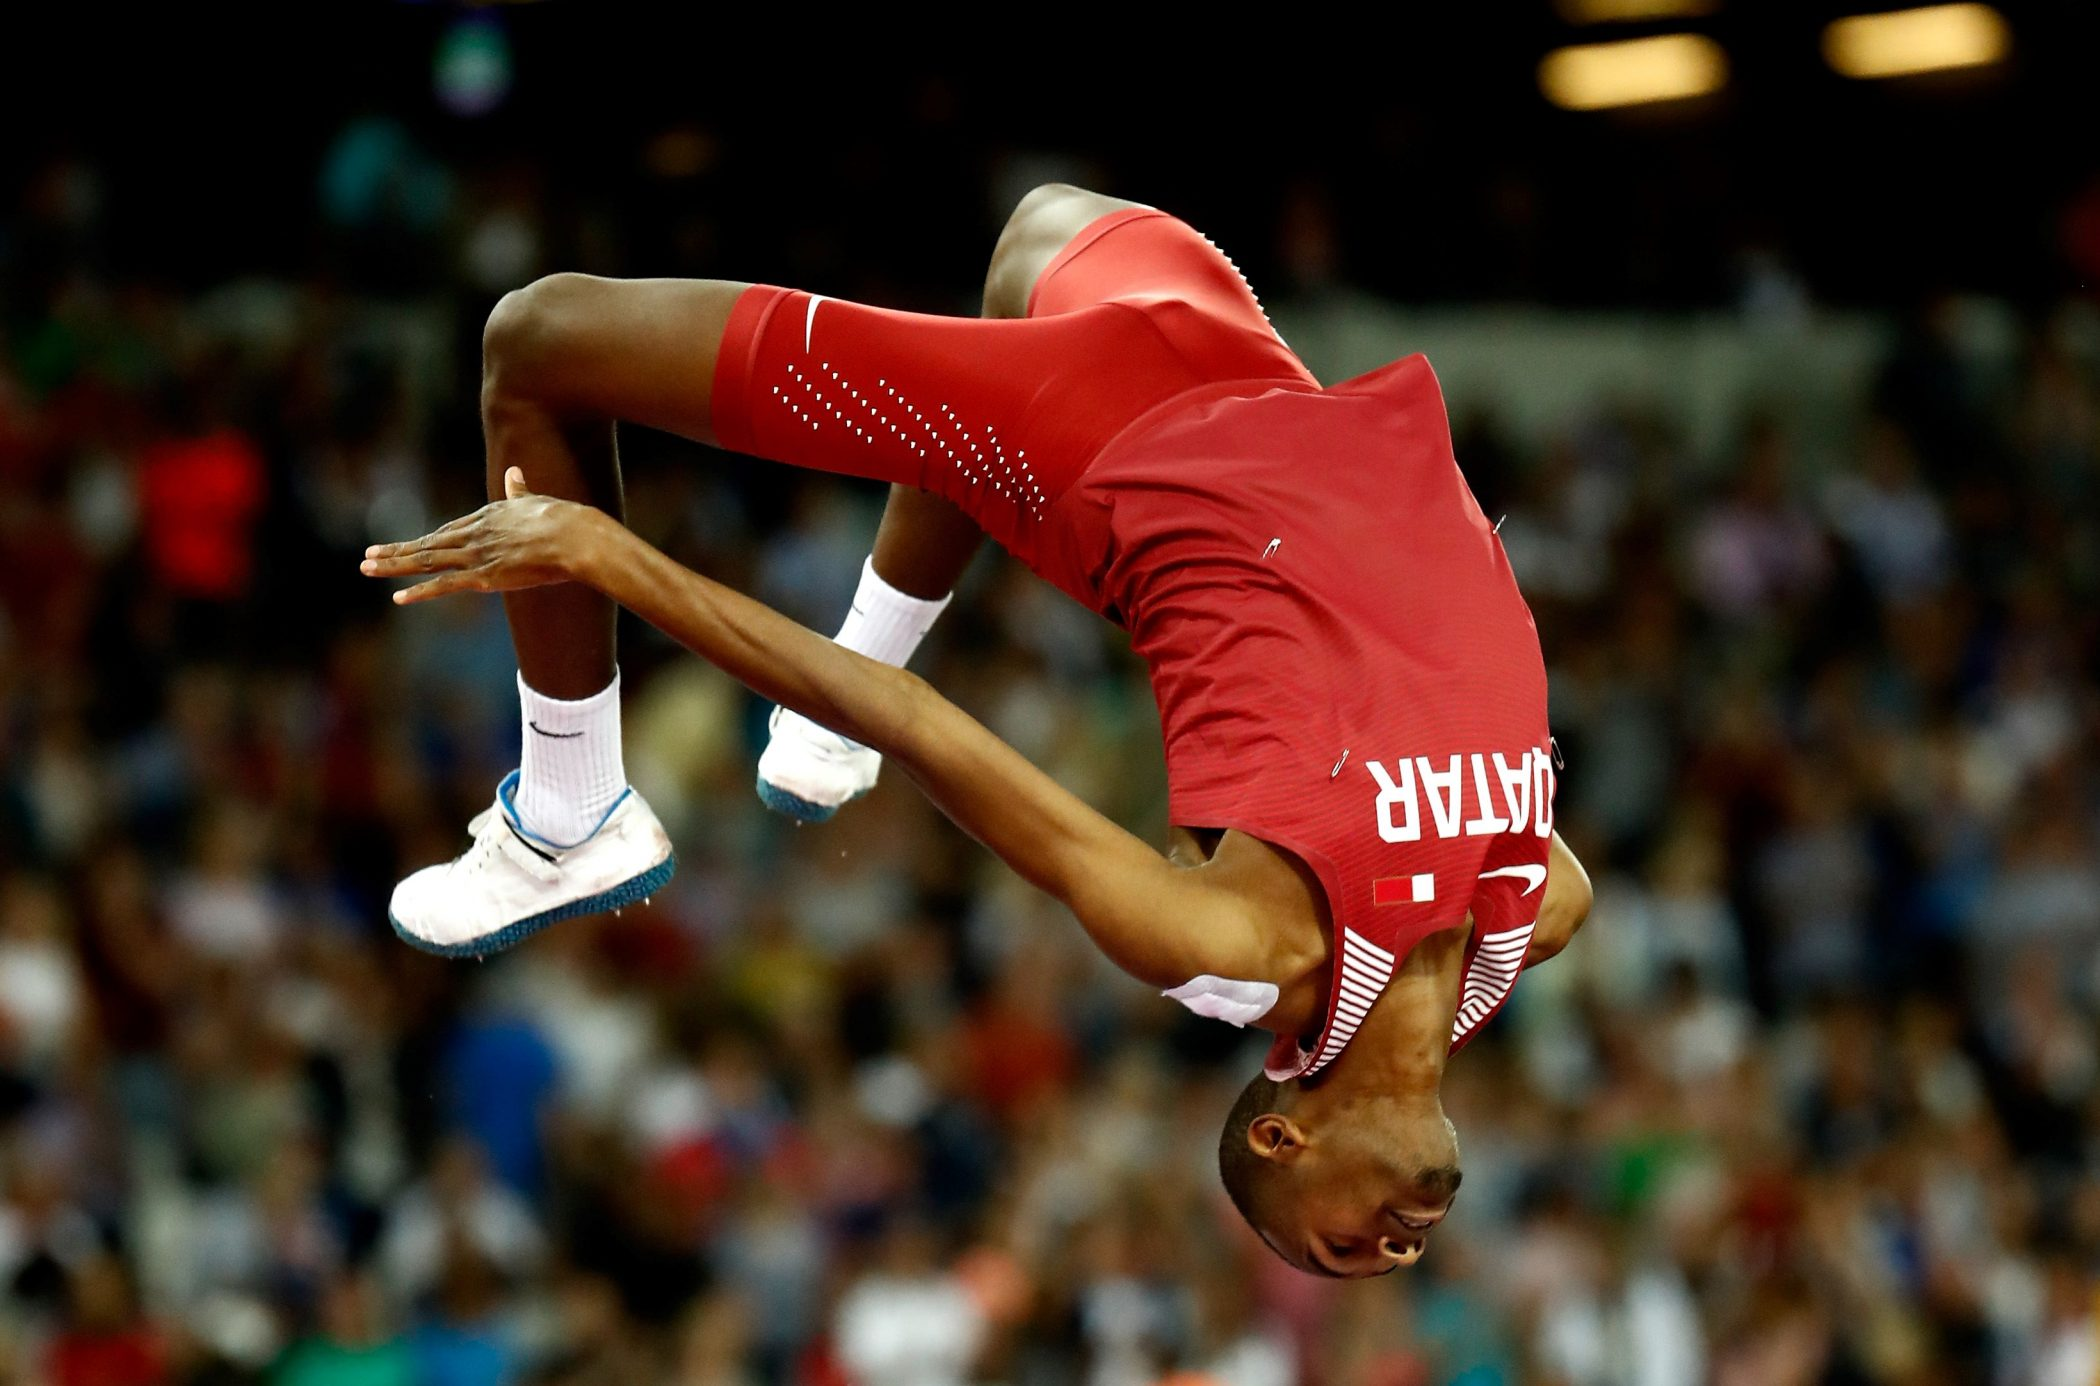 Know Your Athletics Episode 17 High Jump Doha World Championships 2019